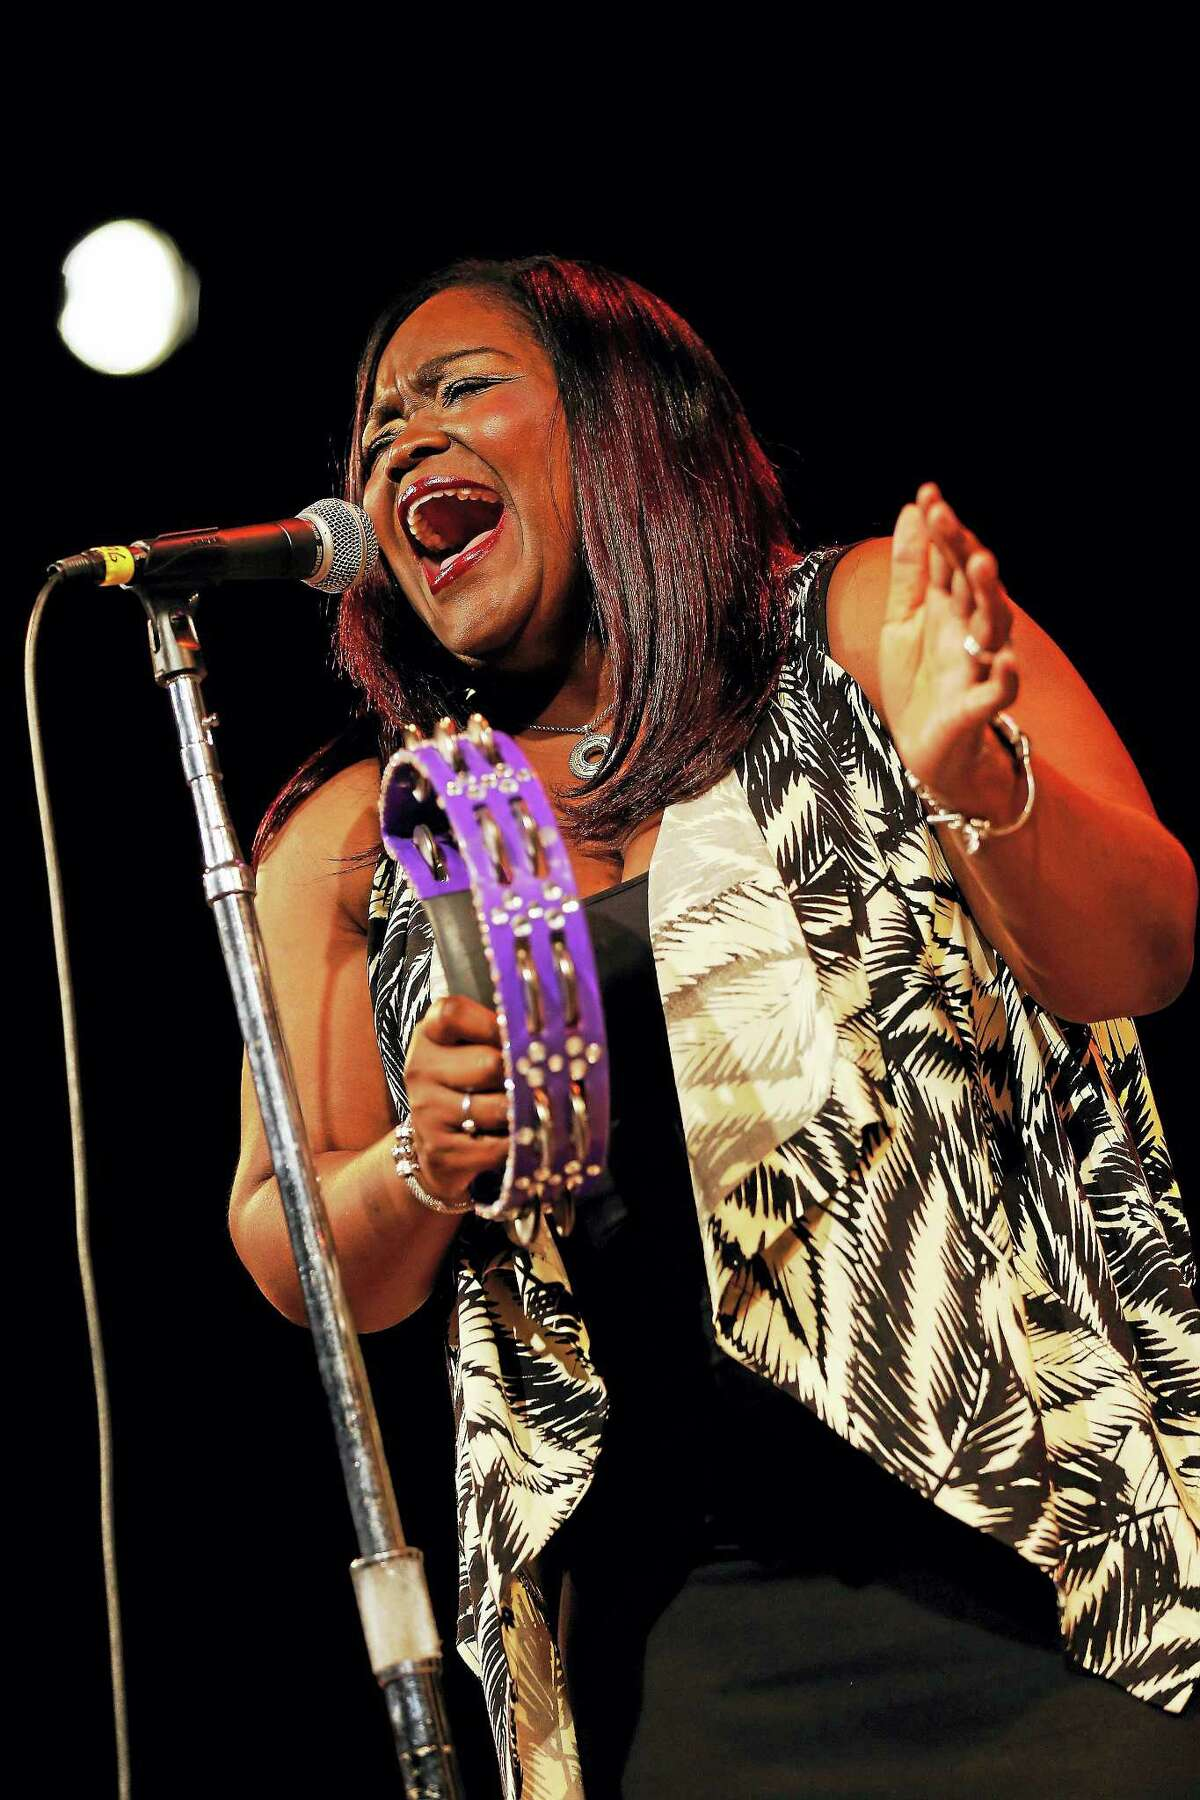 Contributed photo - Shemekia CopelandSinger Shemekia Copeland is coming to Infinity Music Hall in Norfolk on Sept. 9.